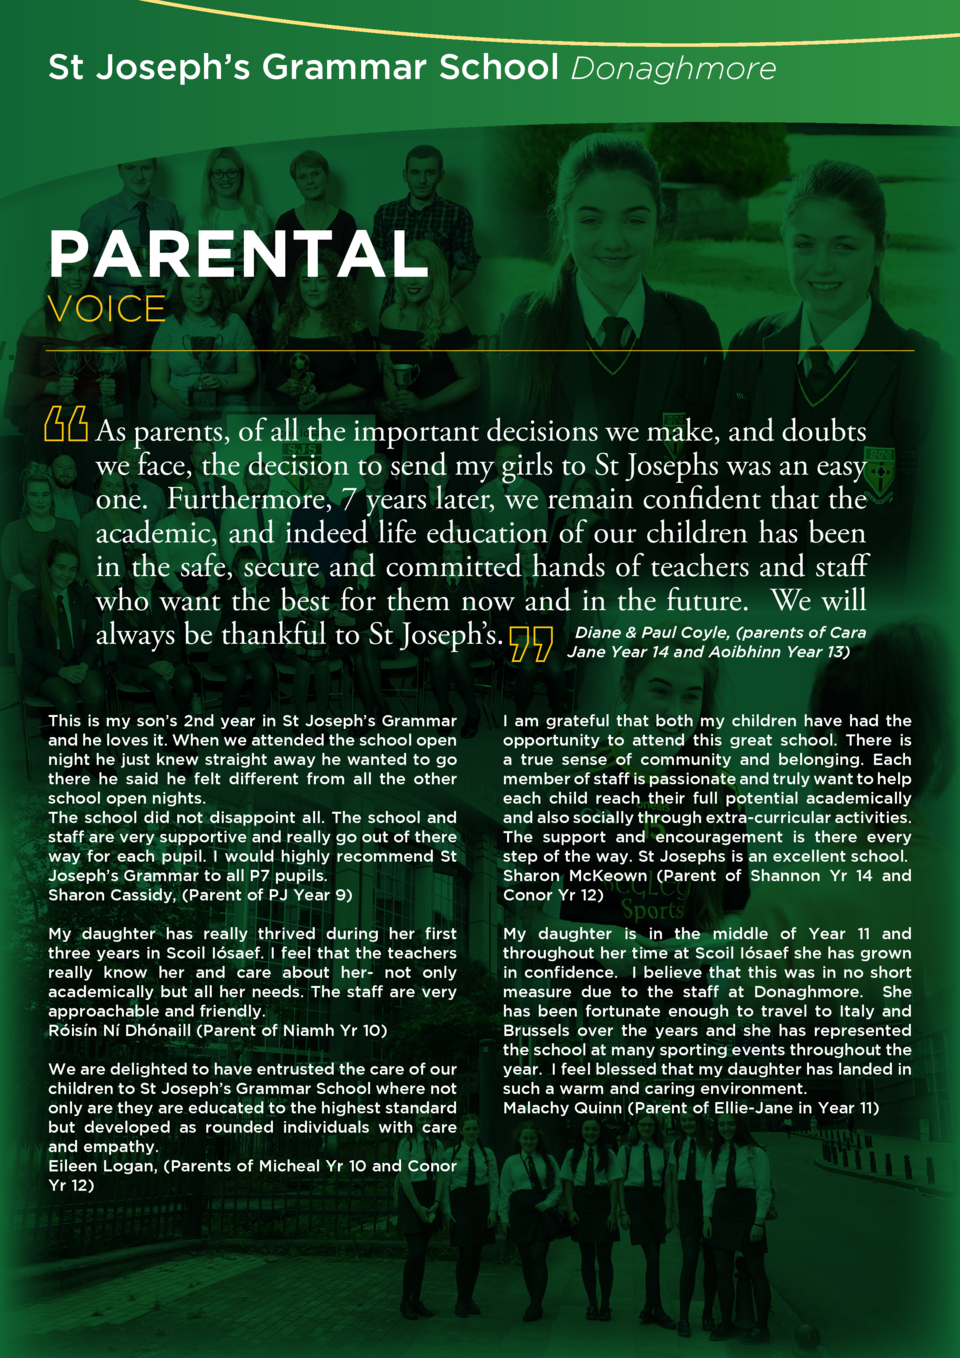 St Joseph   s Grammar School Donaghmore  PARENTAL  VOICE  As parents, of all the important decisions we make, and doubts w...